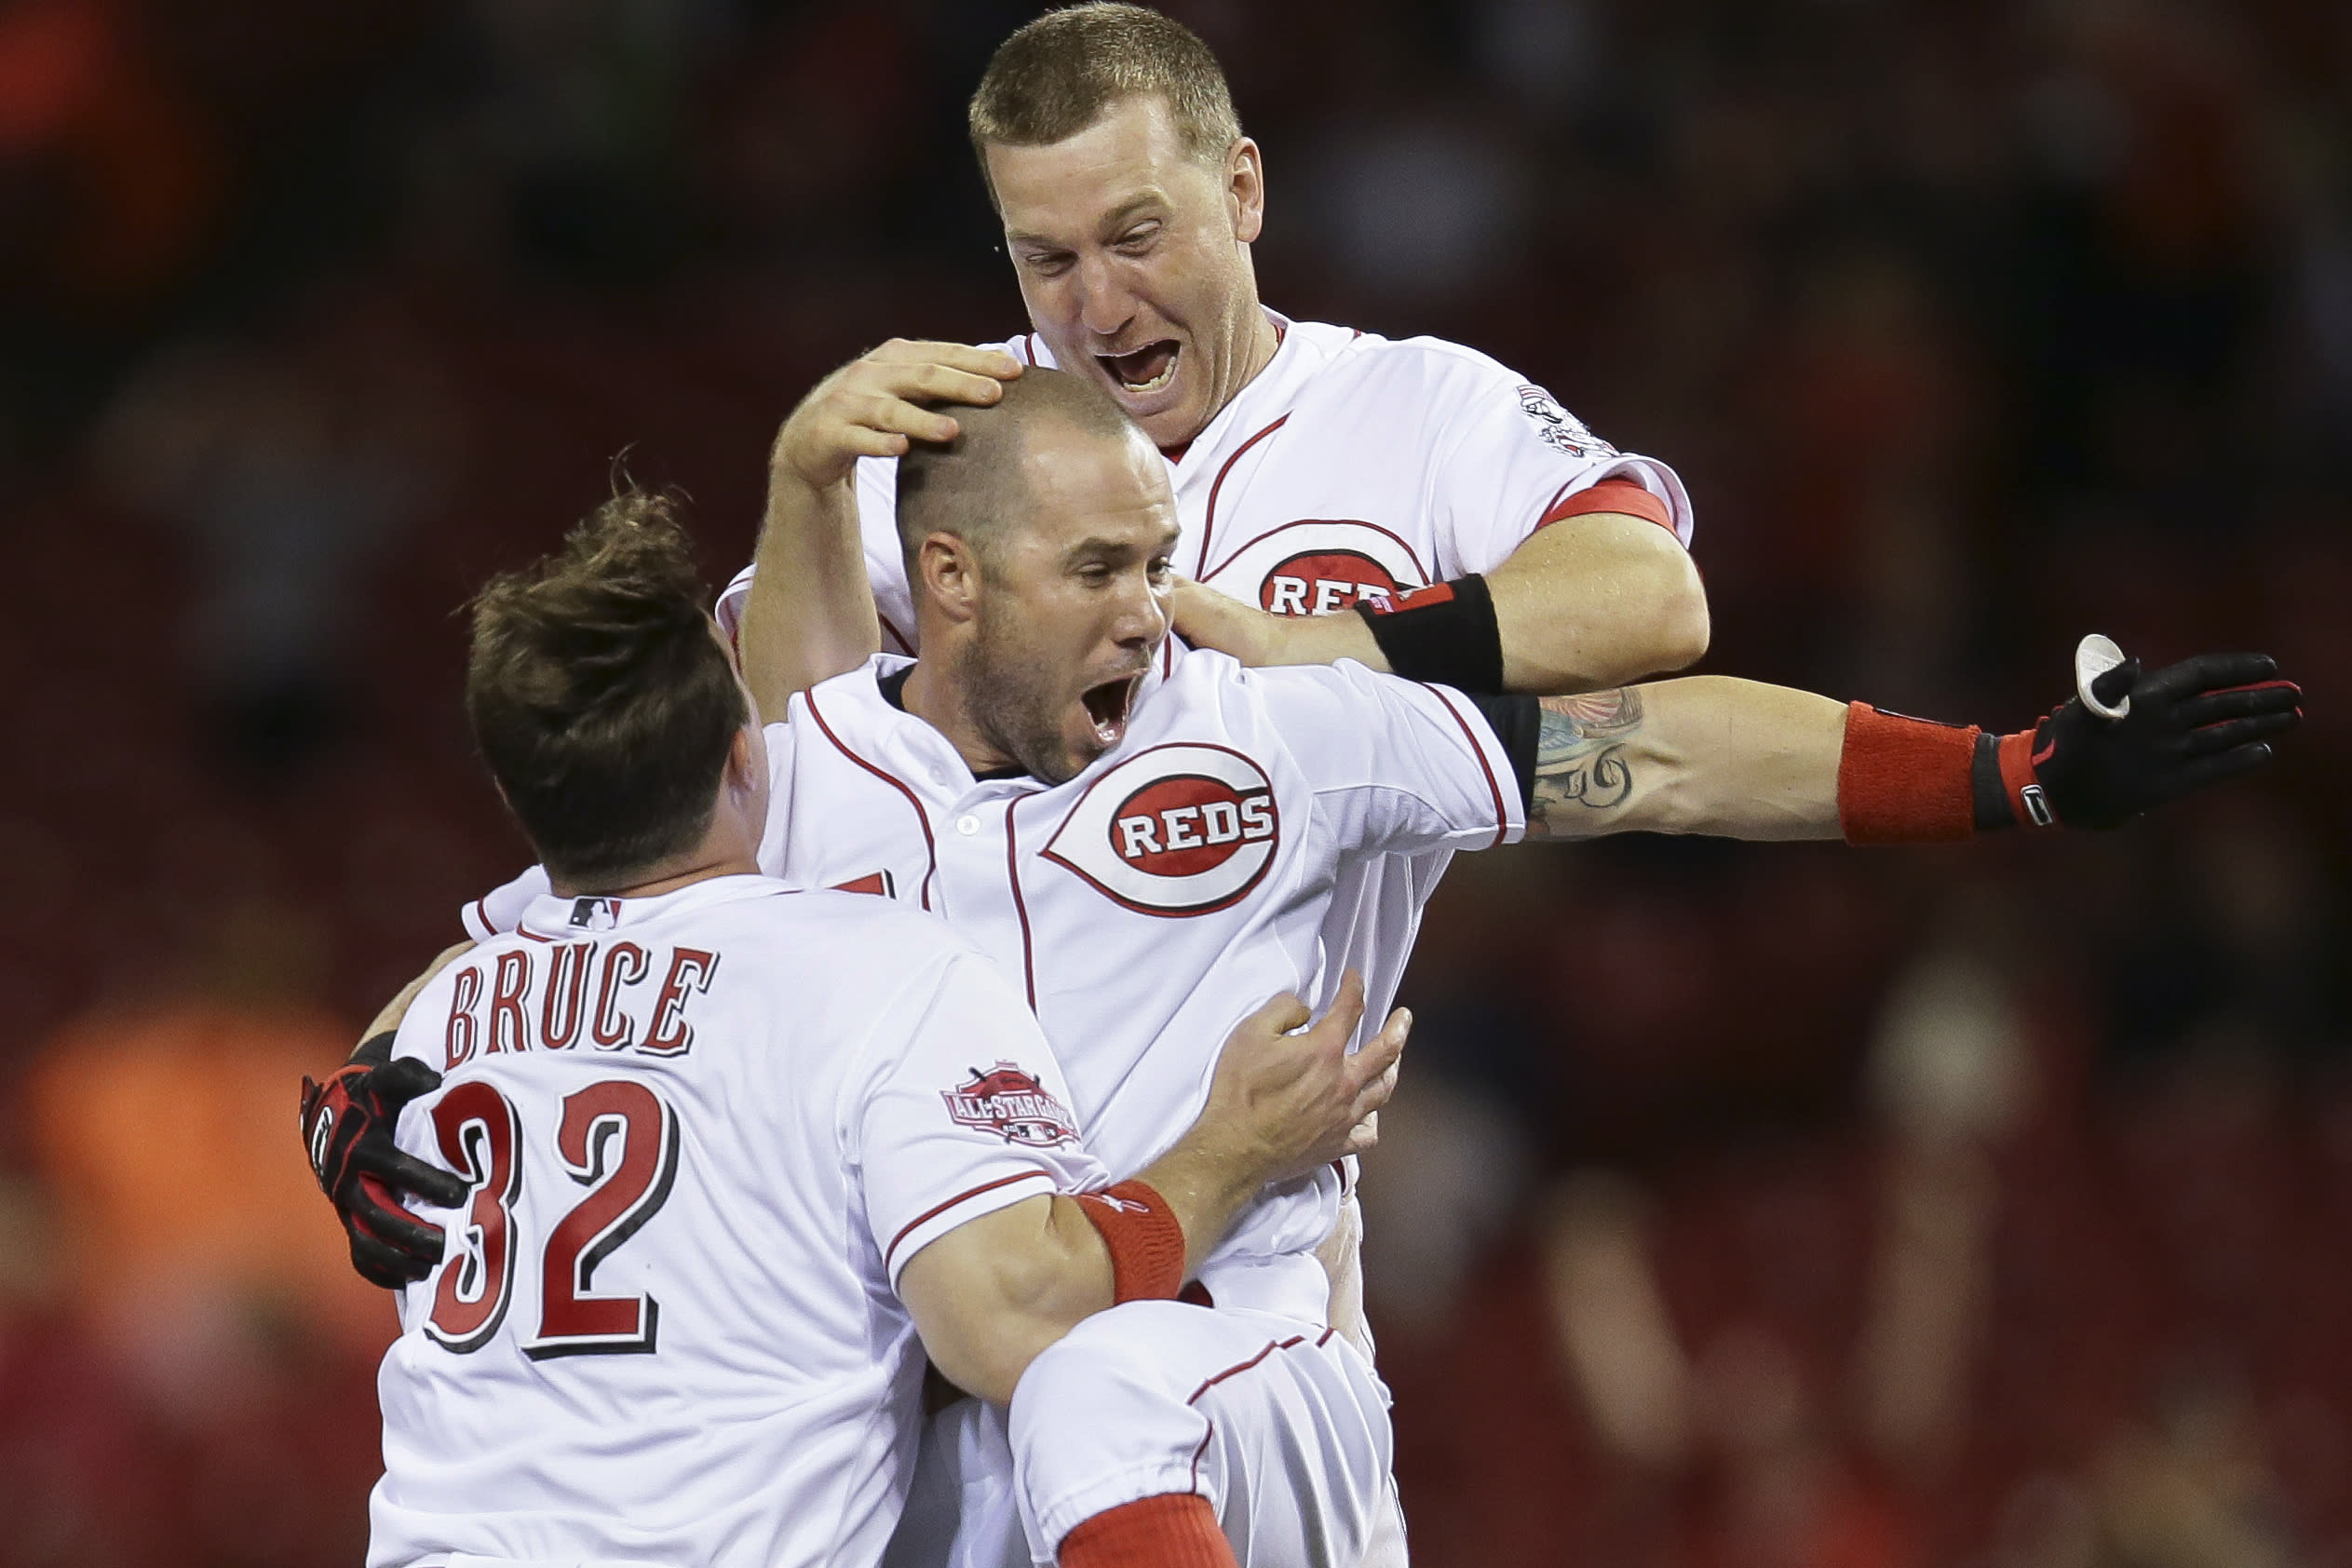 Reds end 9-game losing streak with 2-1 win over Rockies